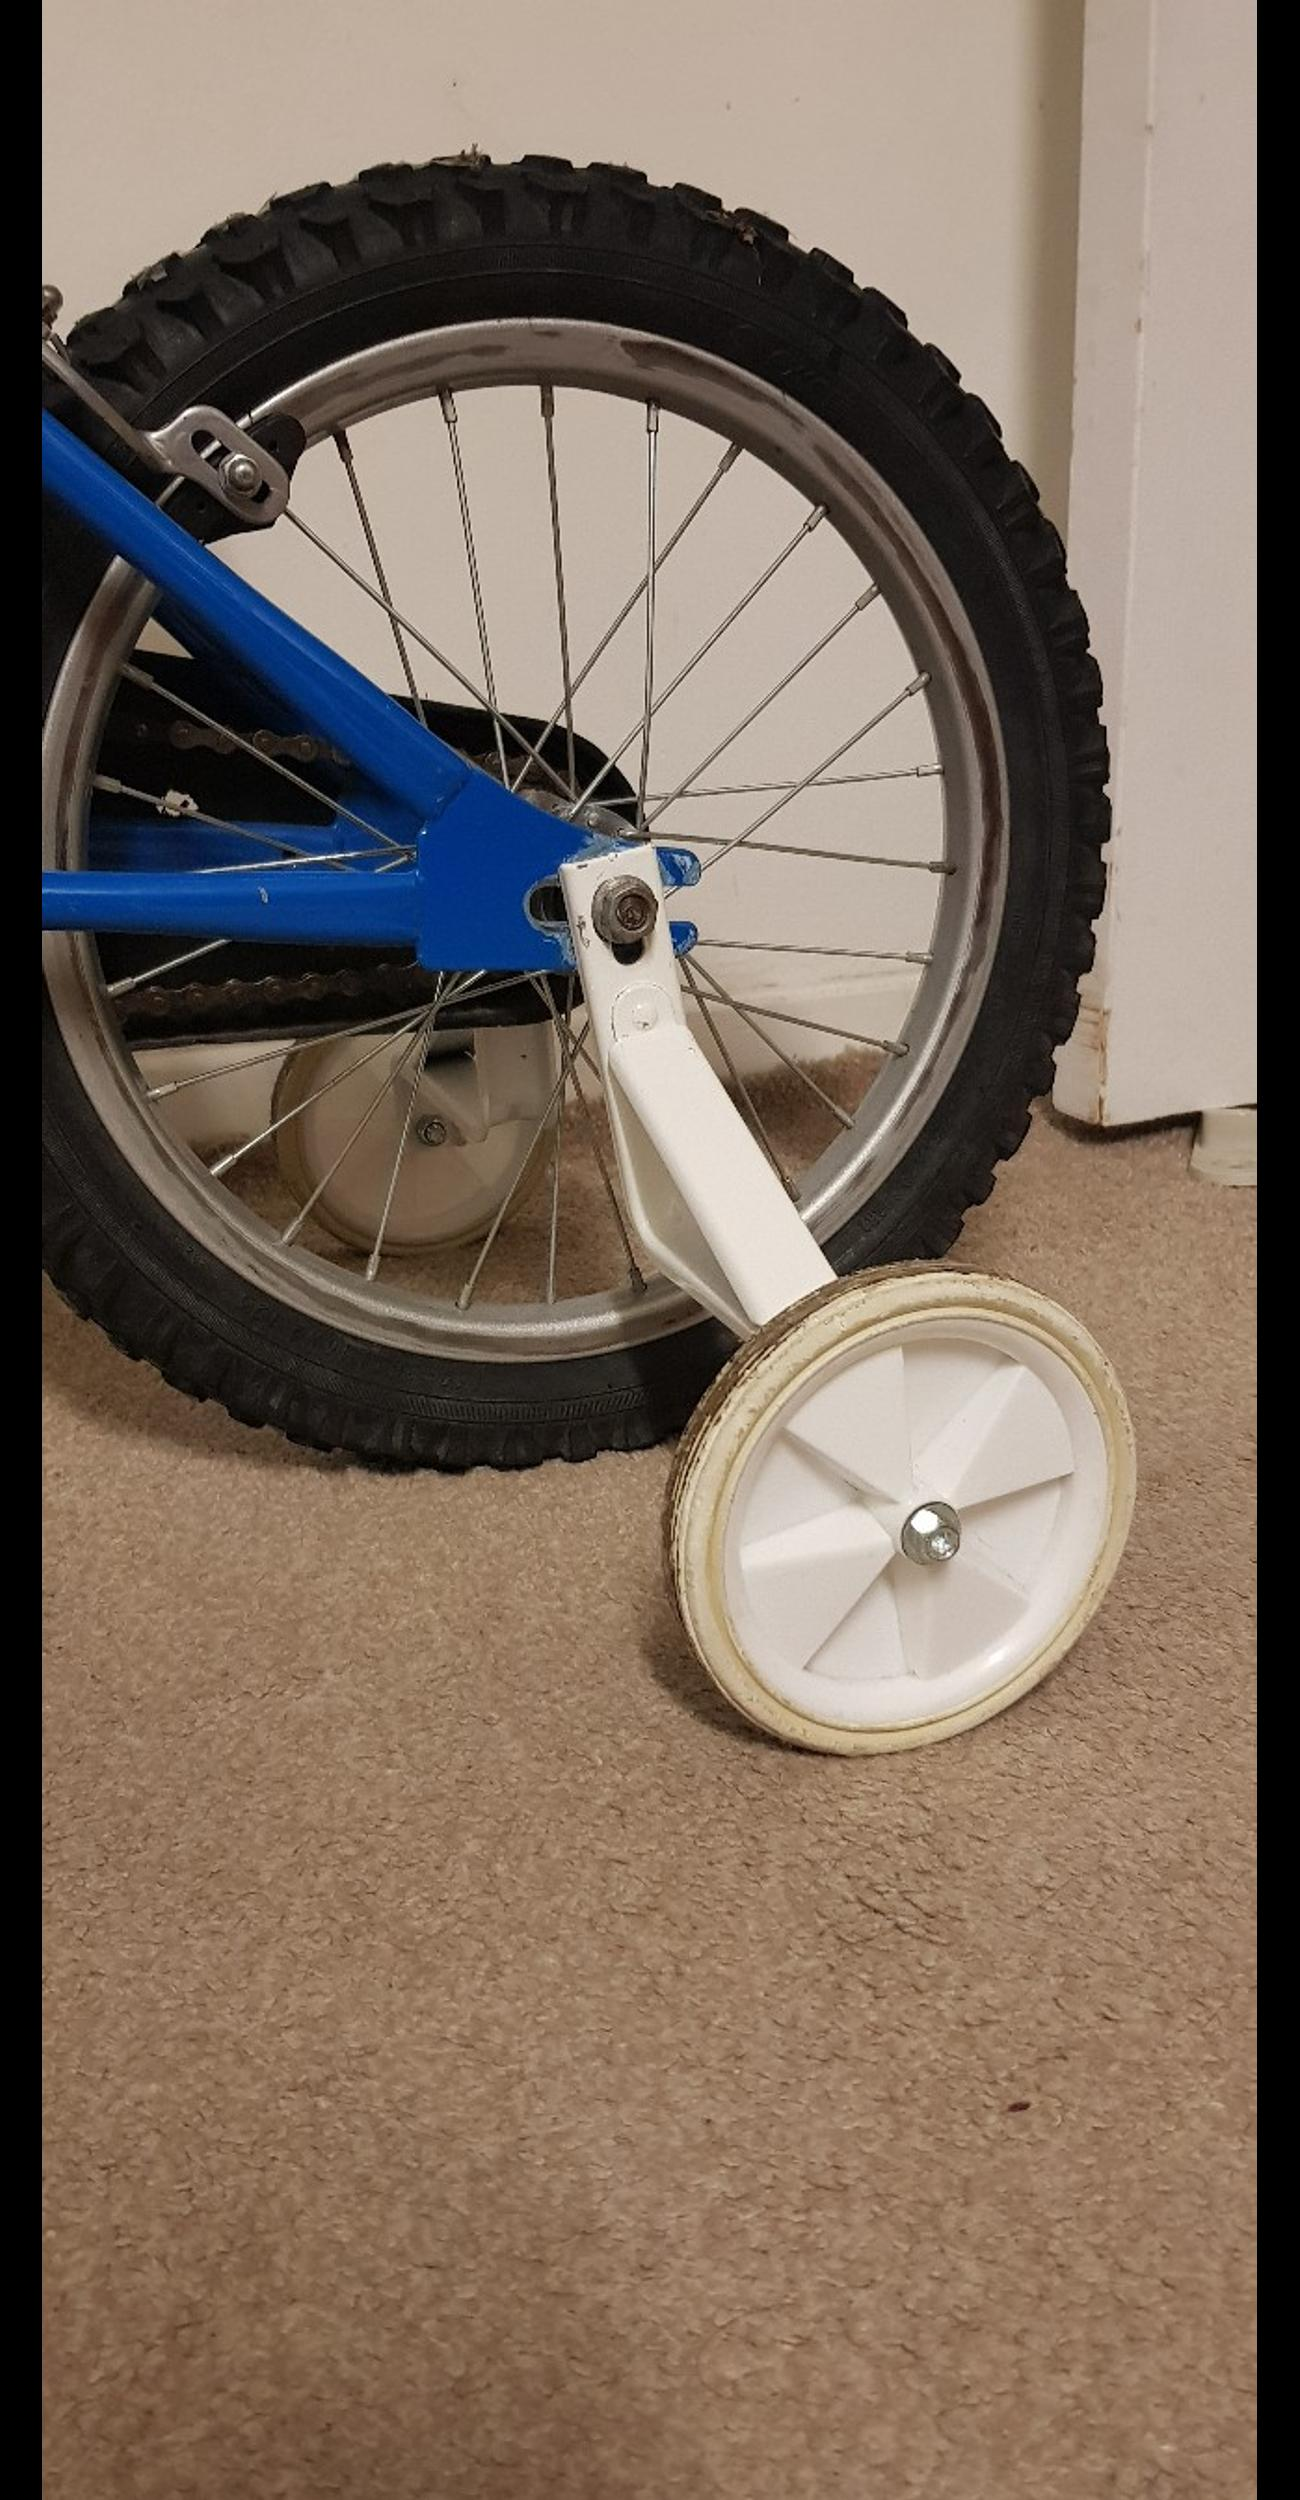 stabilizers for kids bicycle. originally was used on 16 inch bike. price is final.